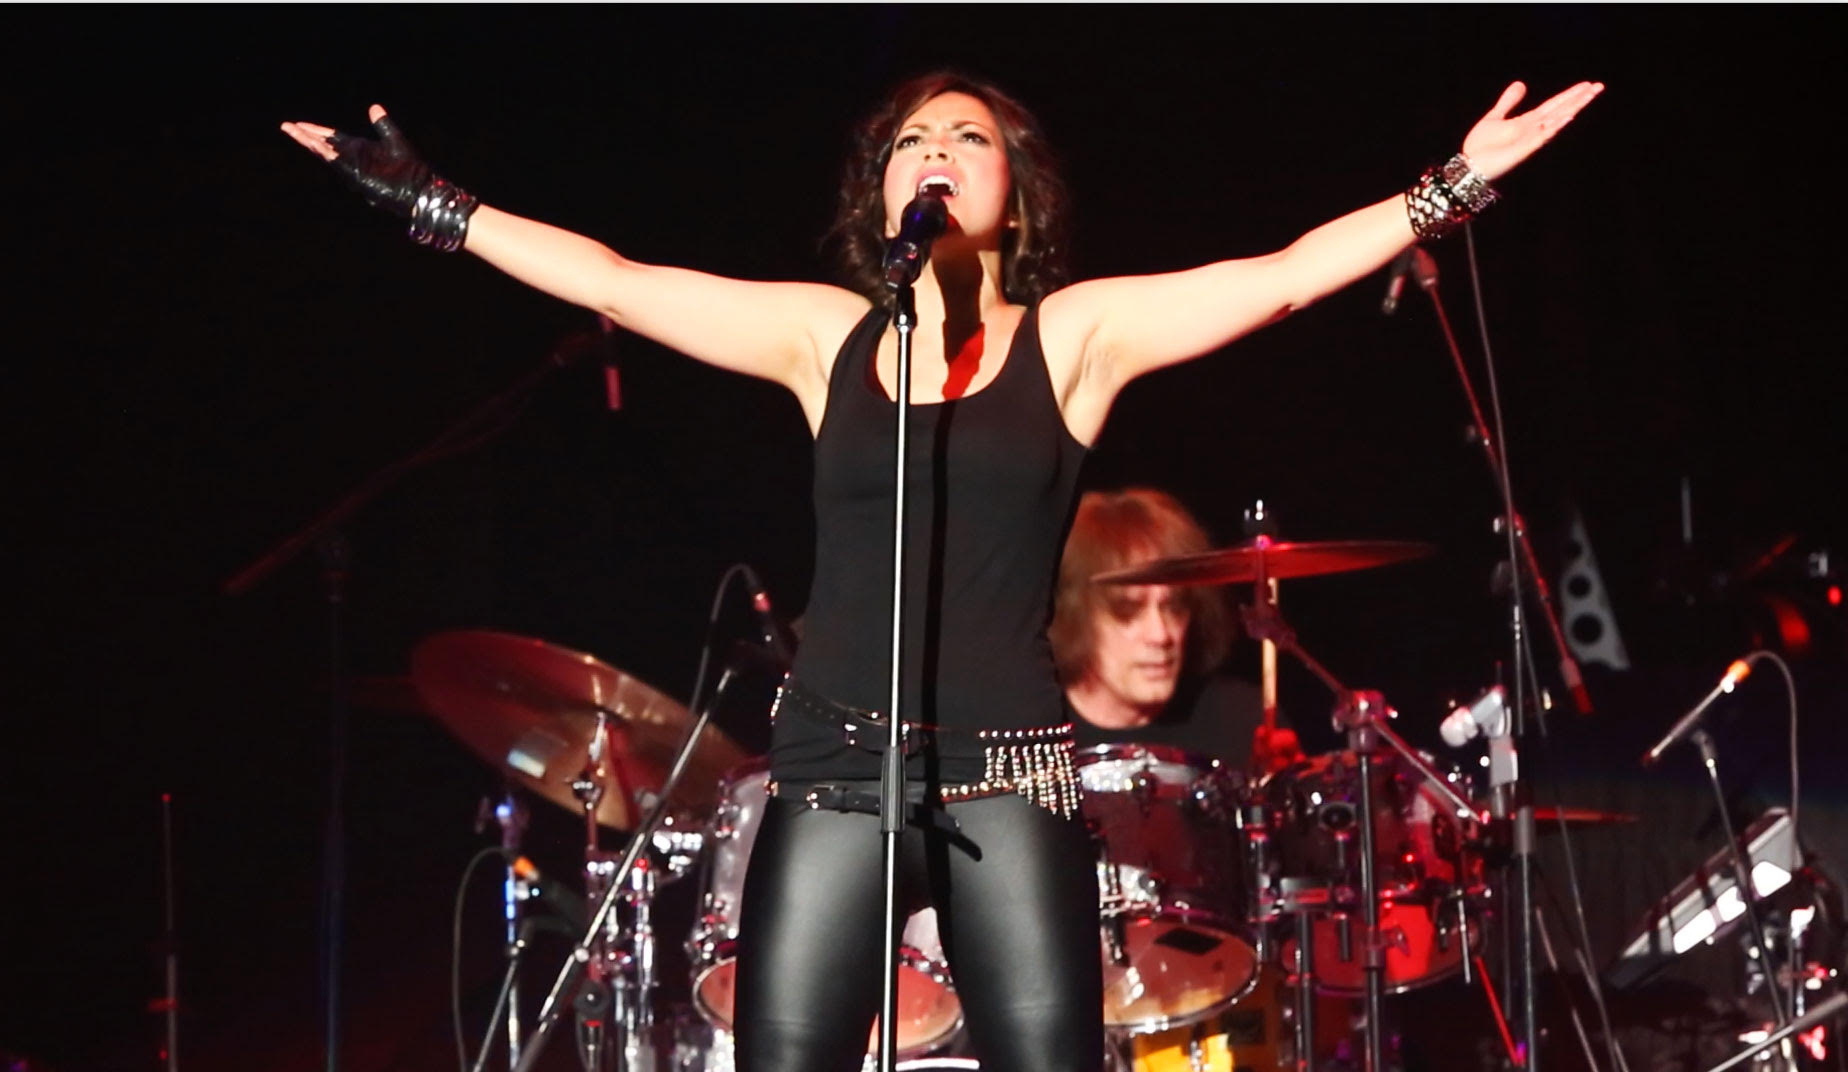 Emm Gryner performing with Trapper